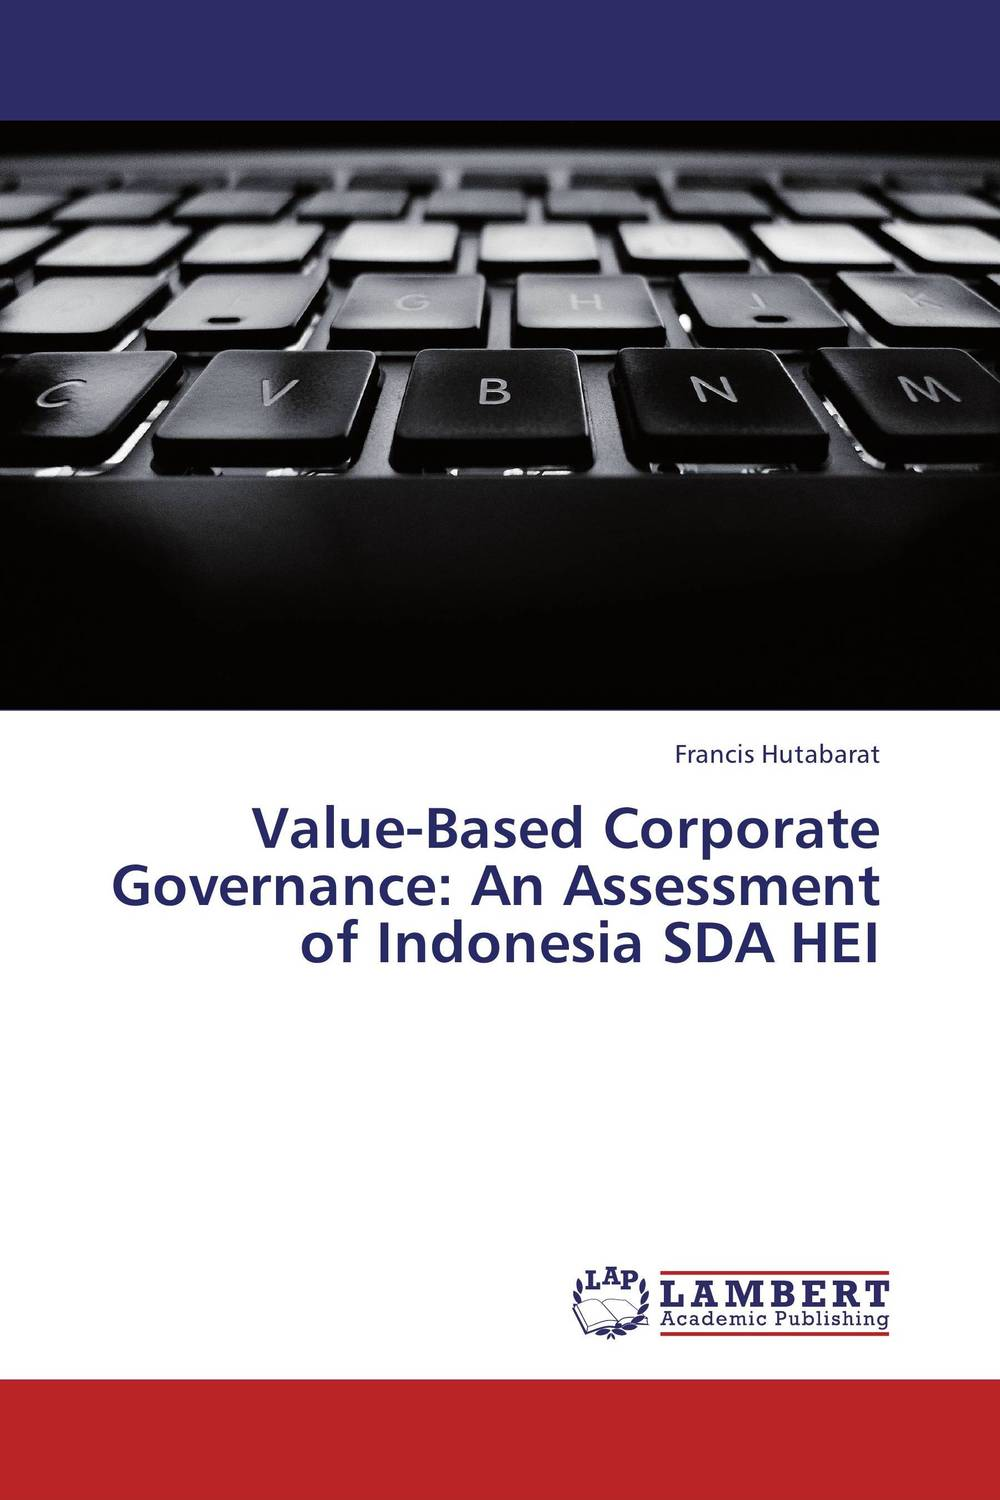 Value-Based Corporate Governance: An Assessment of Indonesia SDA HEI corporate governance audit quality and opportunistic earnings